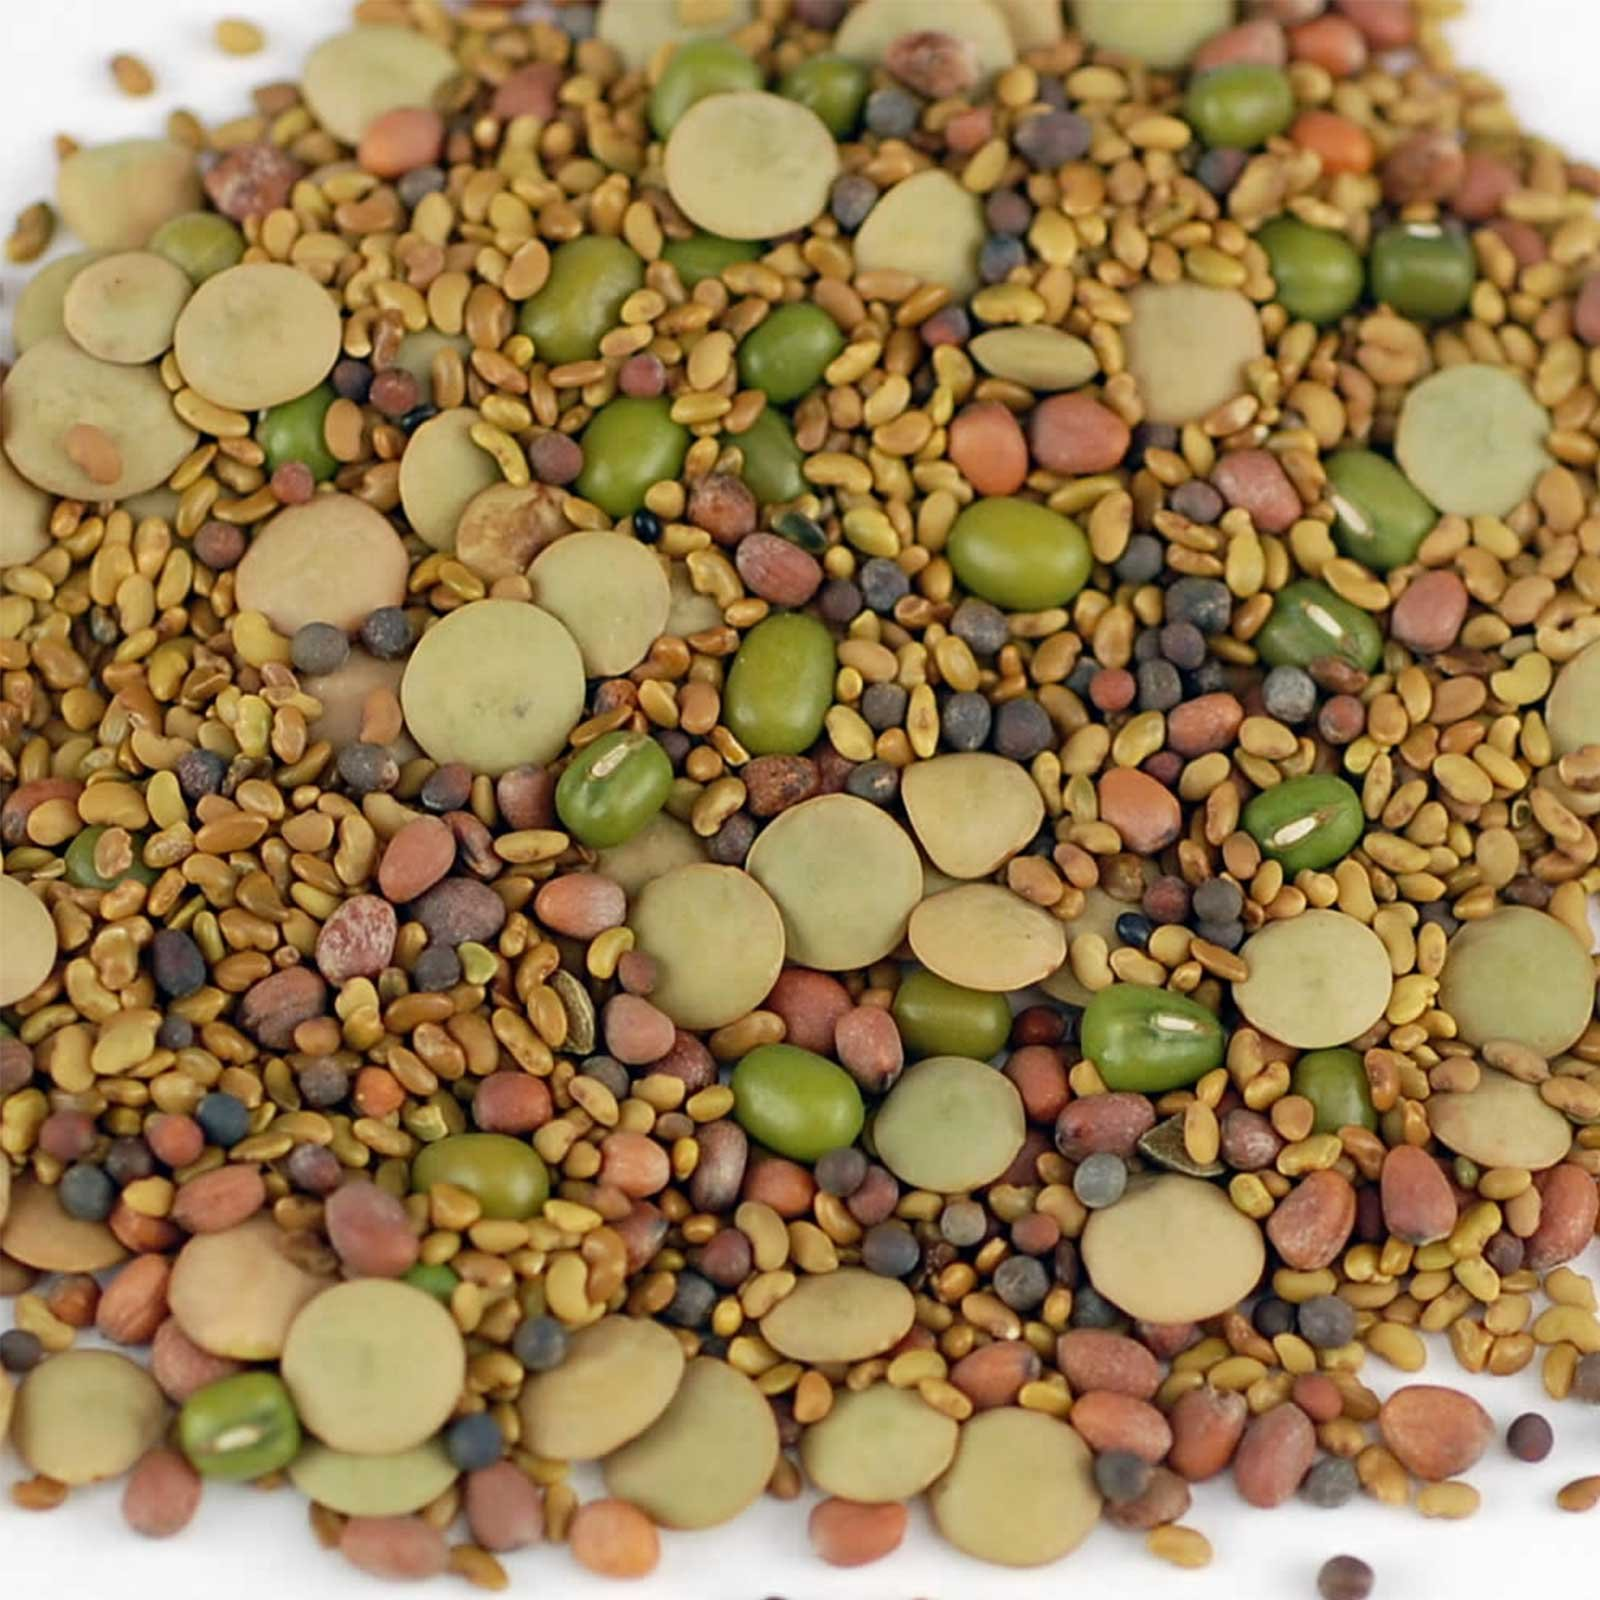 5 Part Salad Sprout Seed Mix -2.5 Lbs- Organic Sprouting Seeds: Radish, Broccoli, Alfalfa, Green Lentil & Mung Bean - For Sprouts by Handy Pantry (Image #2)